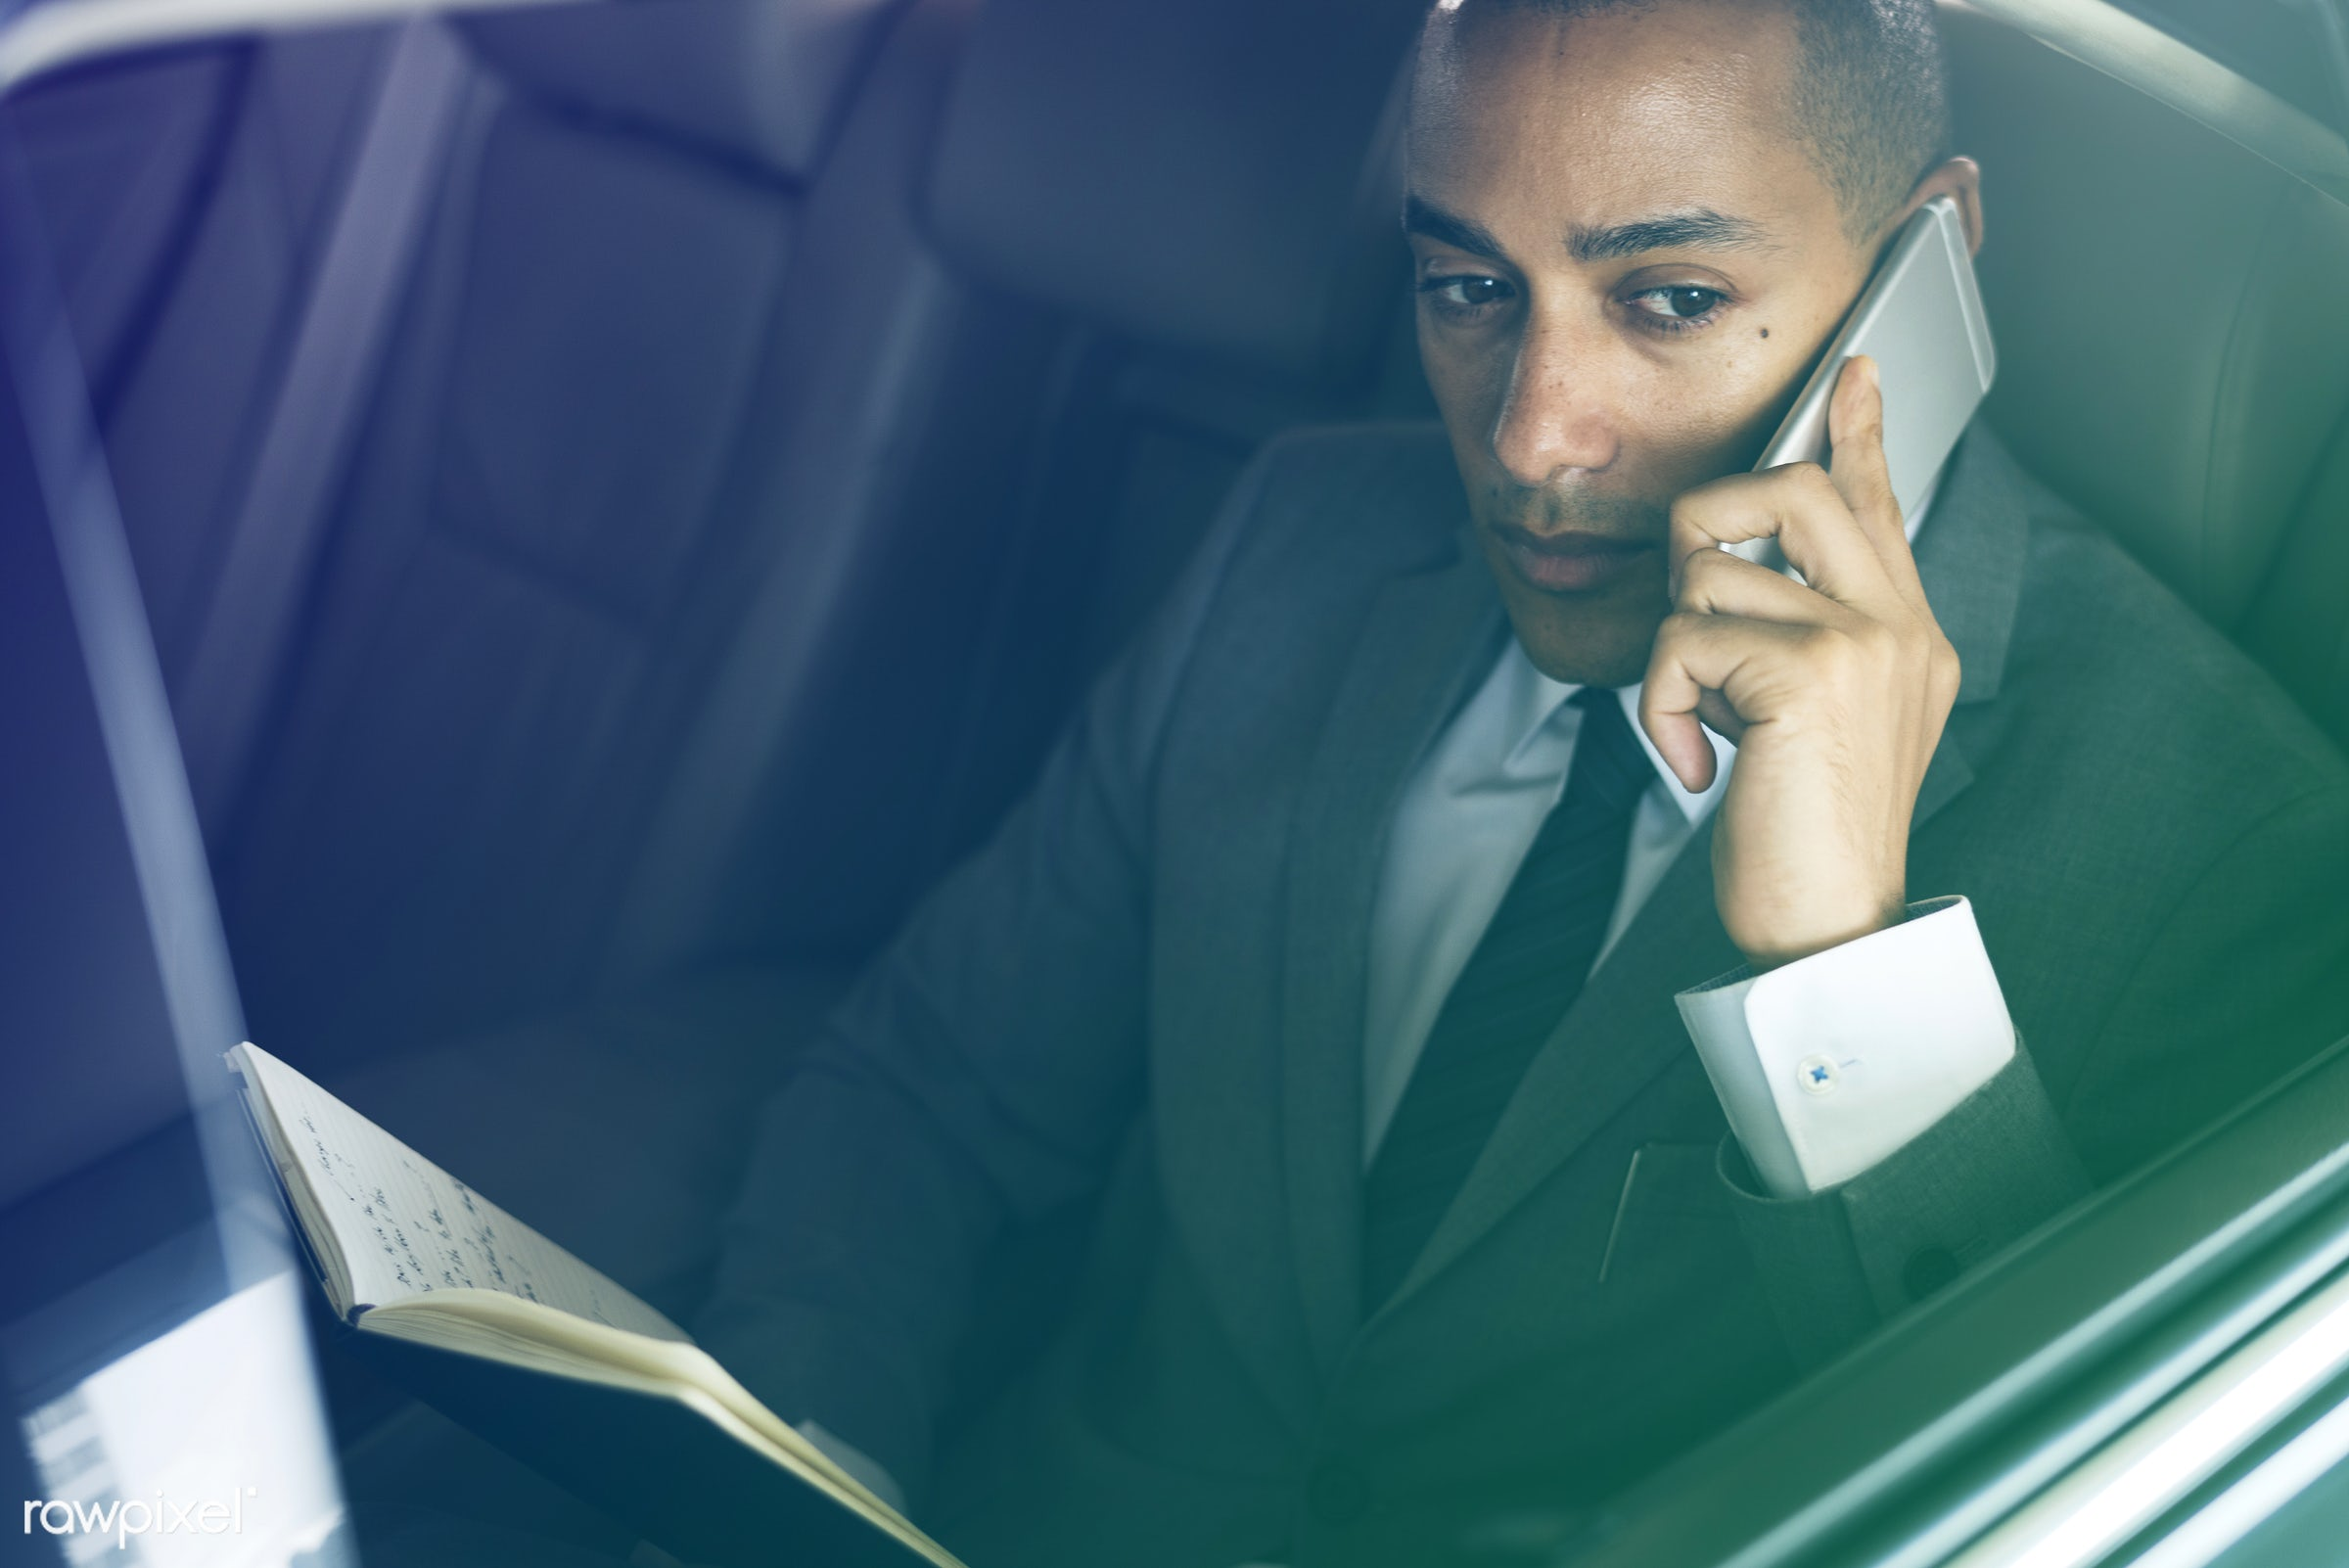 car, expression, call, face, person, phone, tie, white collar worker, vehicle, use, travel, transportation, business,...